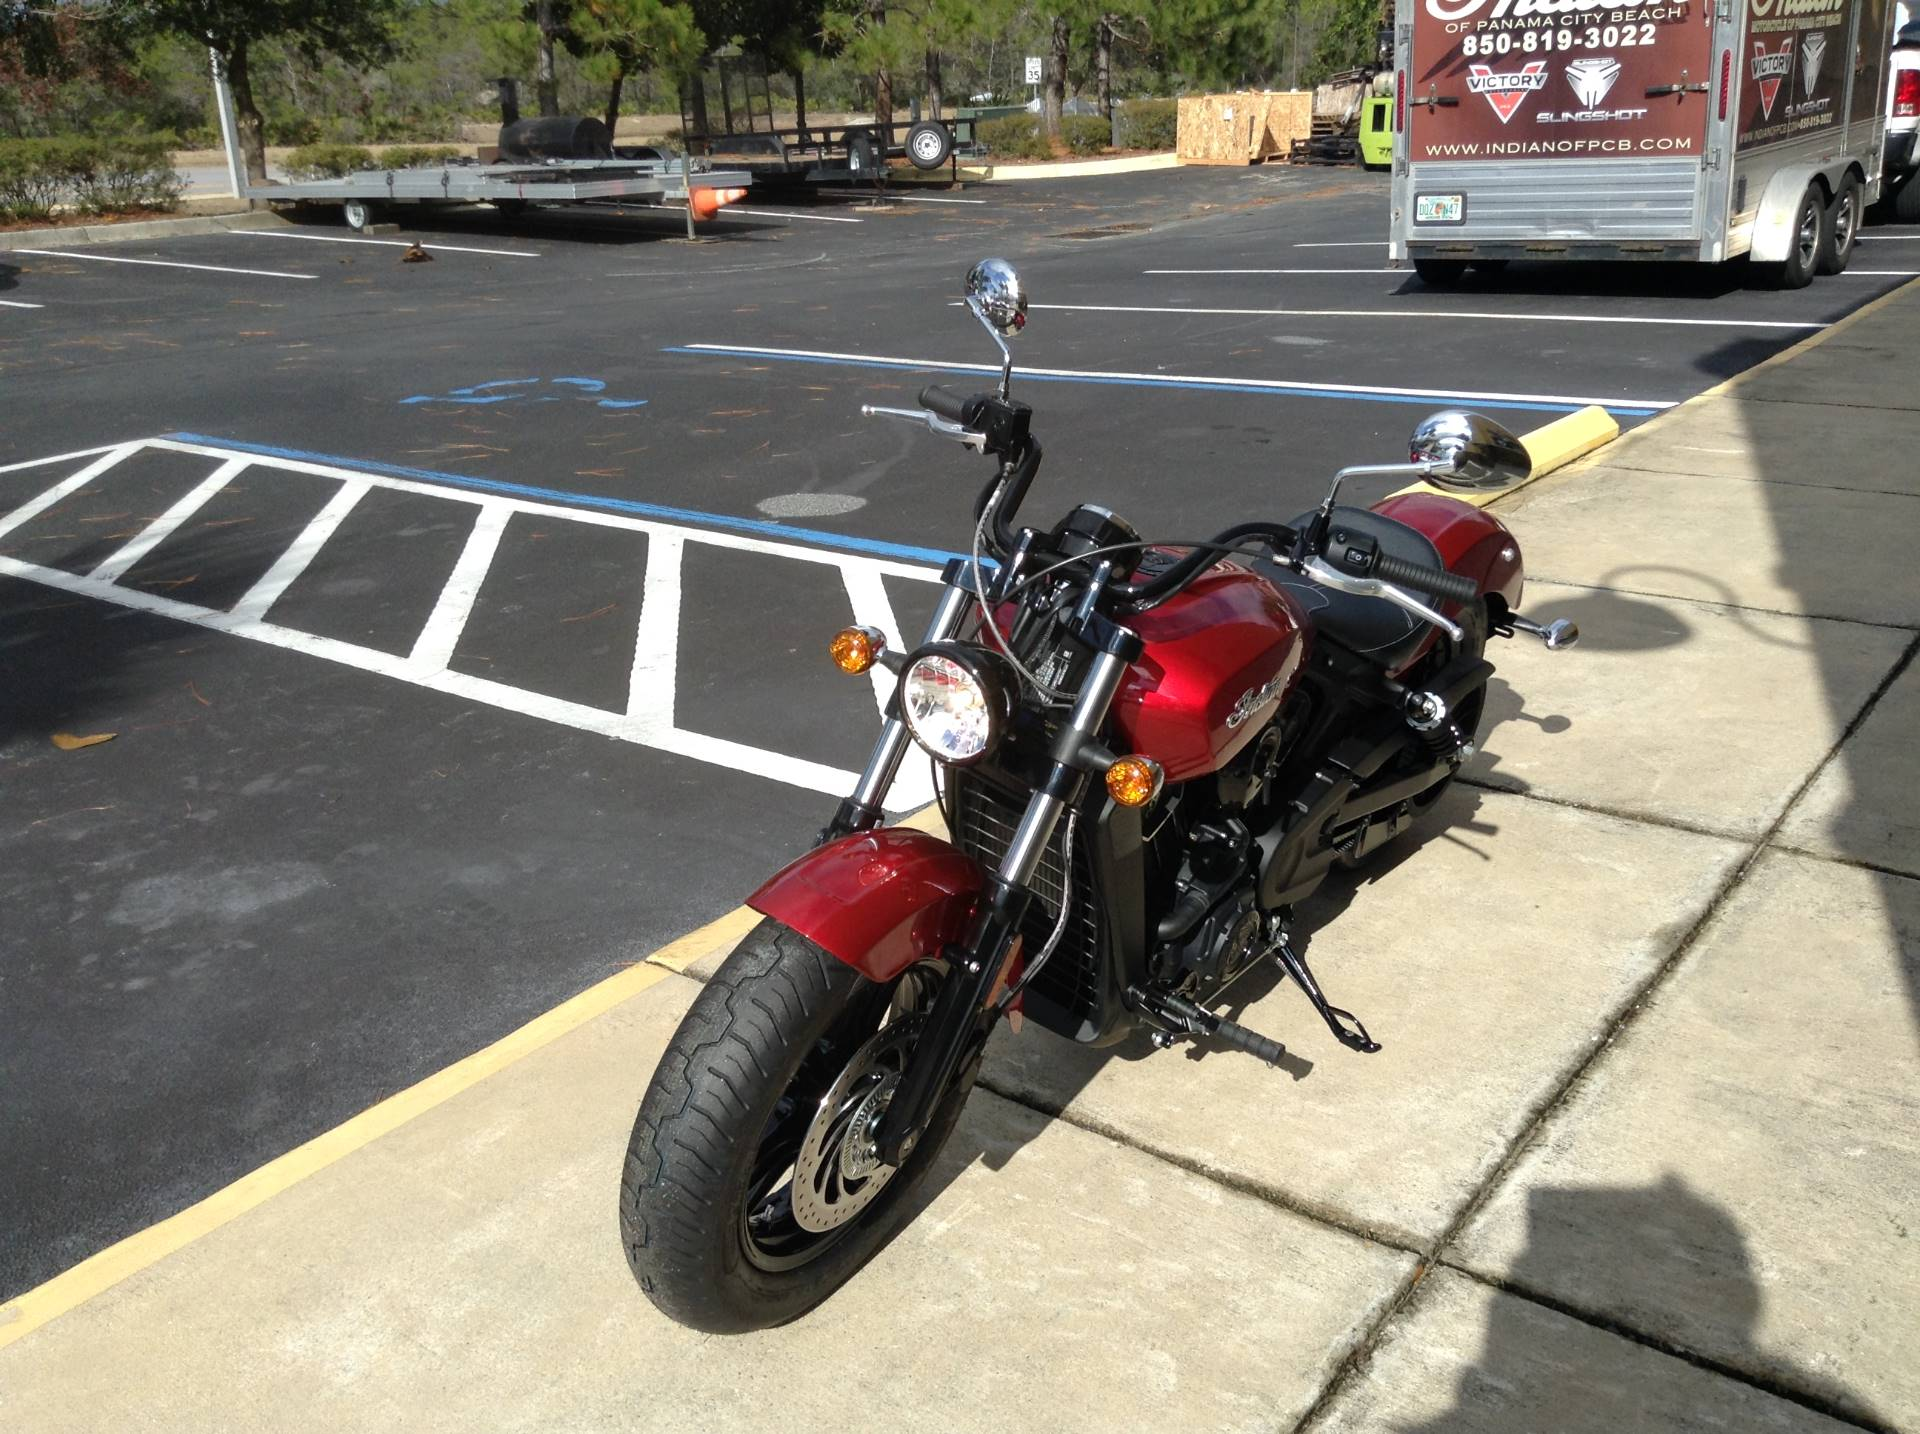 2019 Indian SCOUT 60 in Panama City Beach, Florida